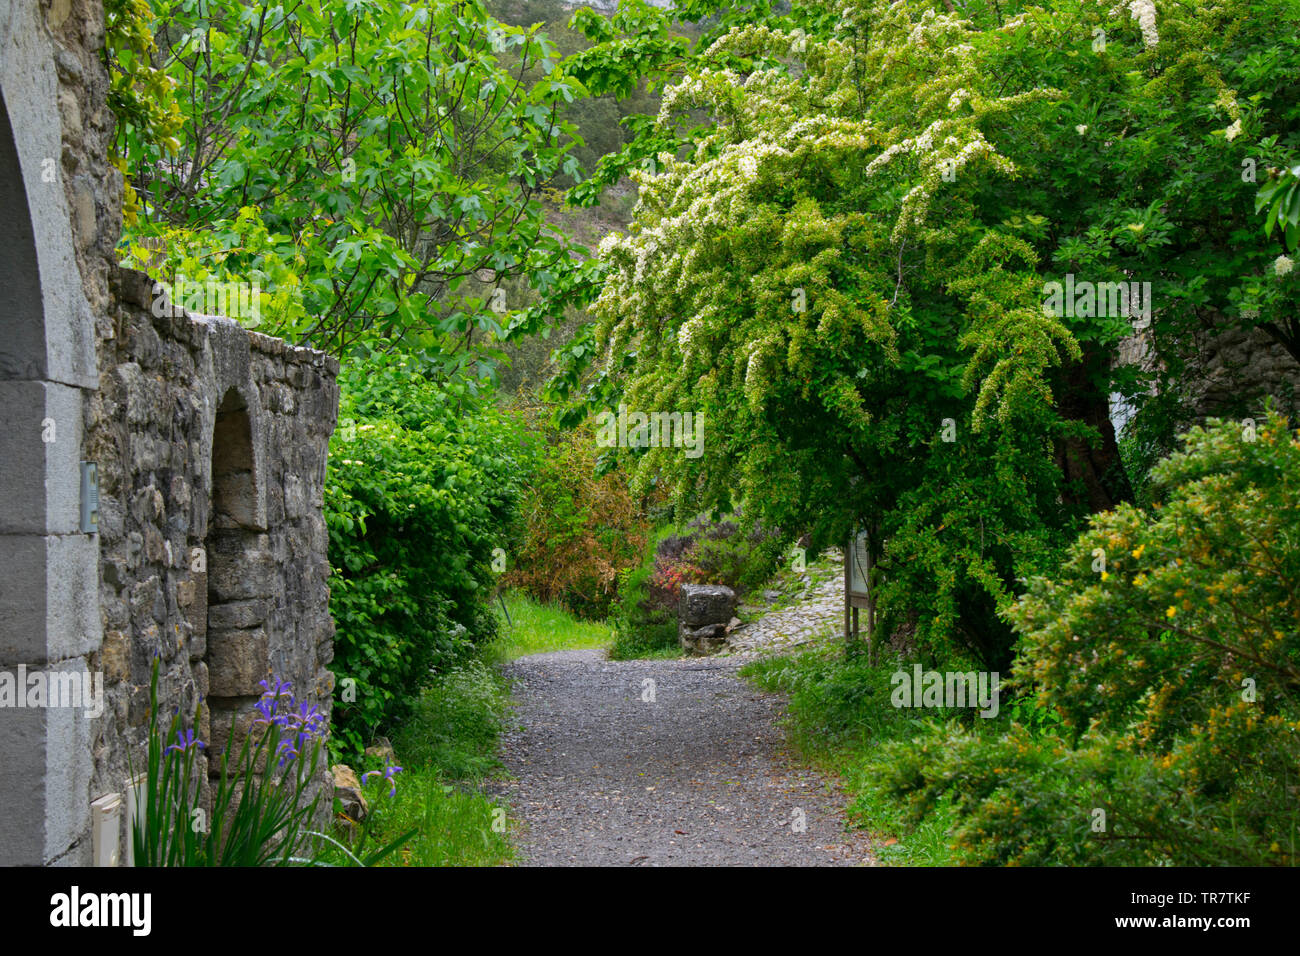 mystical path near Rochecolombe in the Ardeche region in France - Stock Image